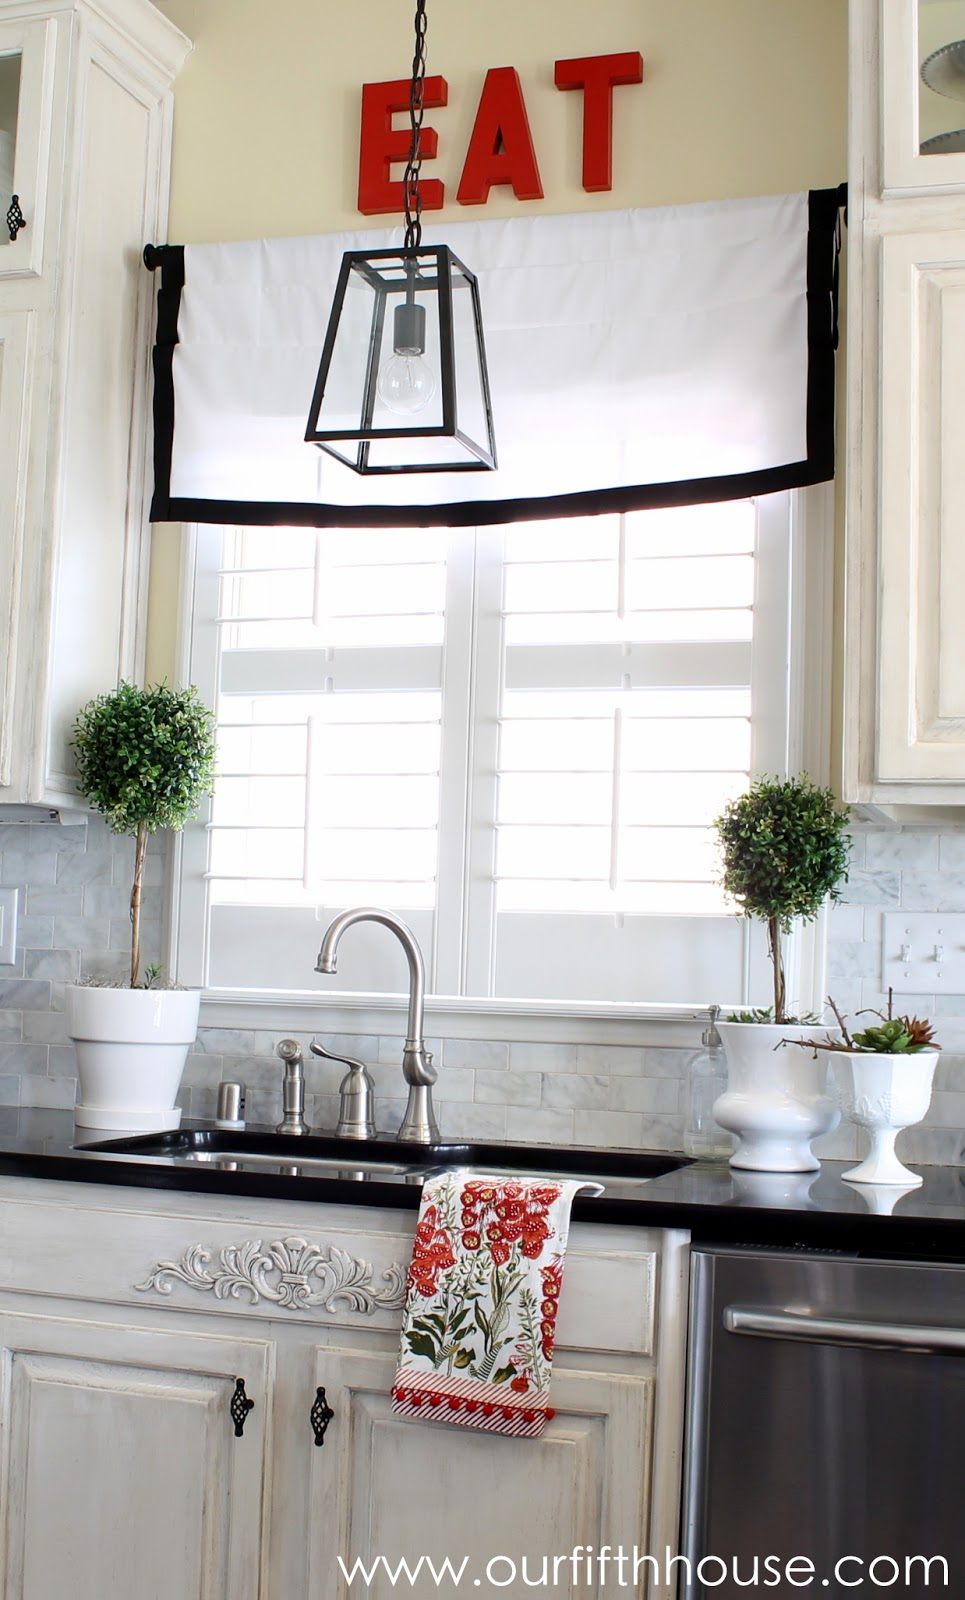 over the sink lighting. kitchen lighting over the sink h